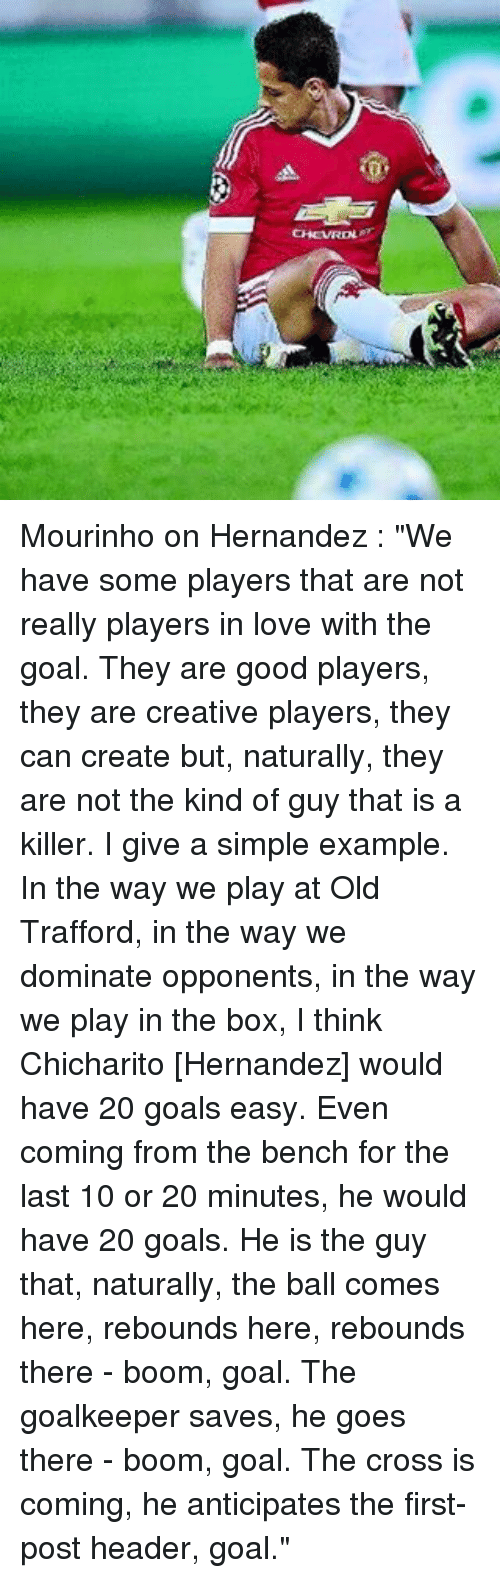 """headers: CHCVROL e Mourinho on Hernandez : """"We have some players that are not really players in love with the goal. They are good players, they are creative players, they can create but, naturally, they are not the kind of guy that is a killer. I give a simple example. In the way we play at Old Trafford, in the way we dominate opponents, in the way we play in the box, I think Chicharito [Hernandez] would have 20 goals easy. Even coming from the bench for the last 10 or 20 minutes, he would have 20 goals. He is the guy that, naturally, the ball comes here, rebounds here, rebounds there - boom, goal. The goalkeeper saves, he goes there - boom, goal. The cross is coming, he anticipates the first-post header, goal."""""""